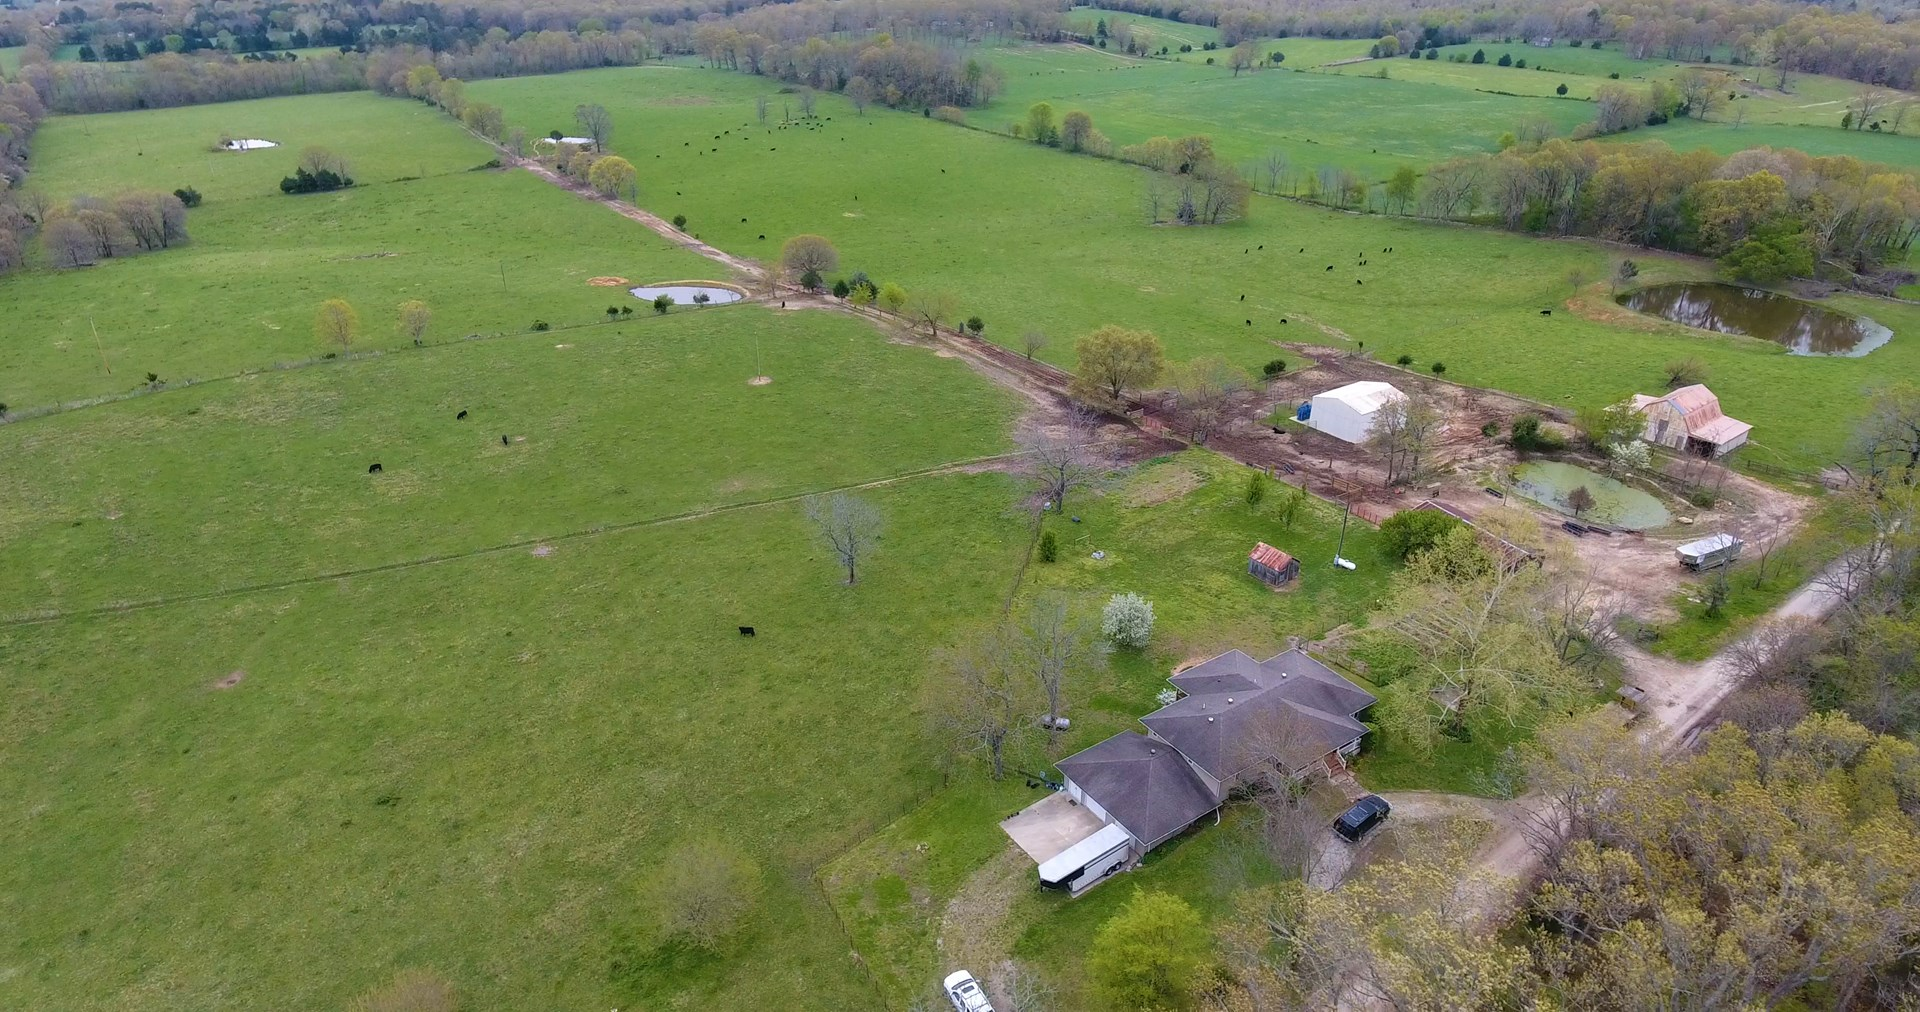 Country Home and Farm For Sale in Southern Missouri Ozarks